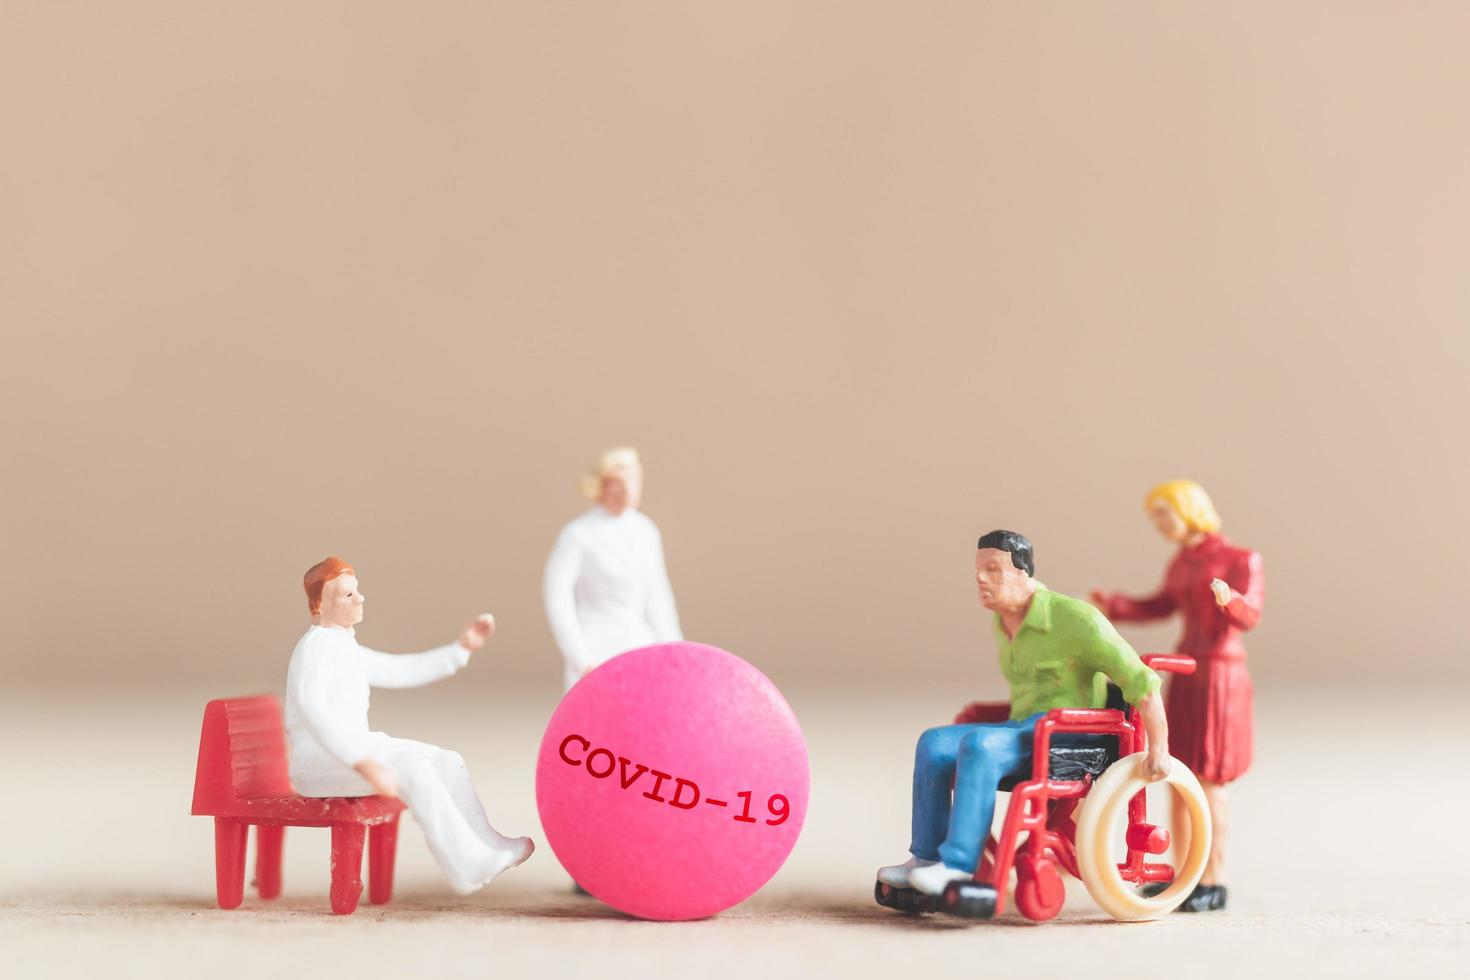 Miniature doctor researching and developing a Coronavirus vaccine, medicine to stop the COVID-19 outbreak concept photo